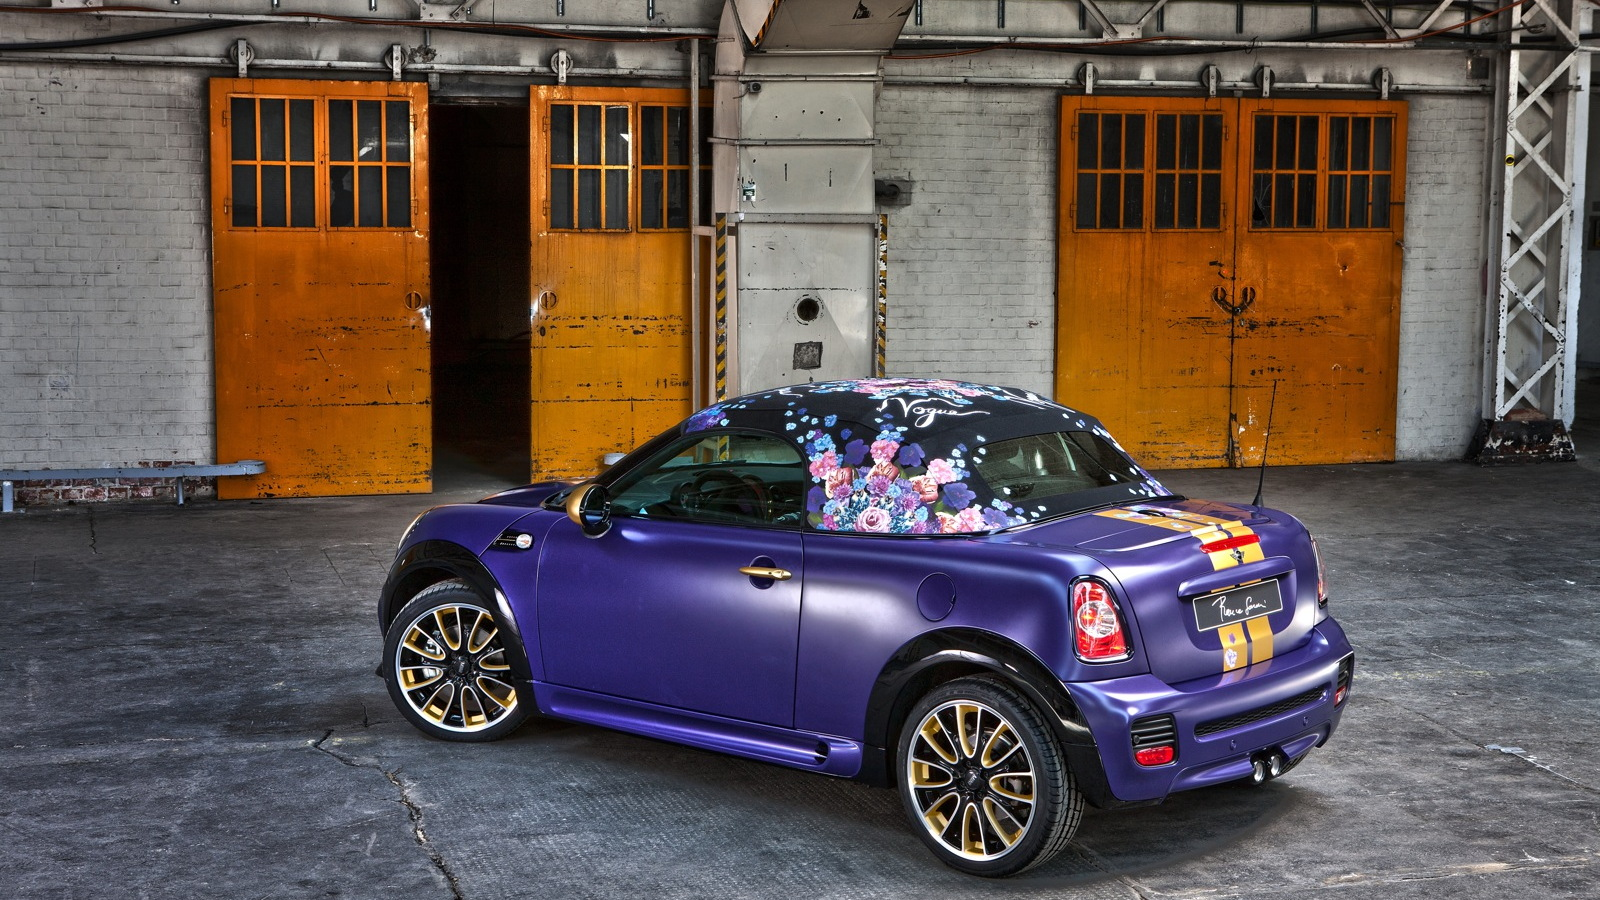 The Franca Sozzani designed MINI Roadster, created for Life Ball 2012